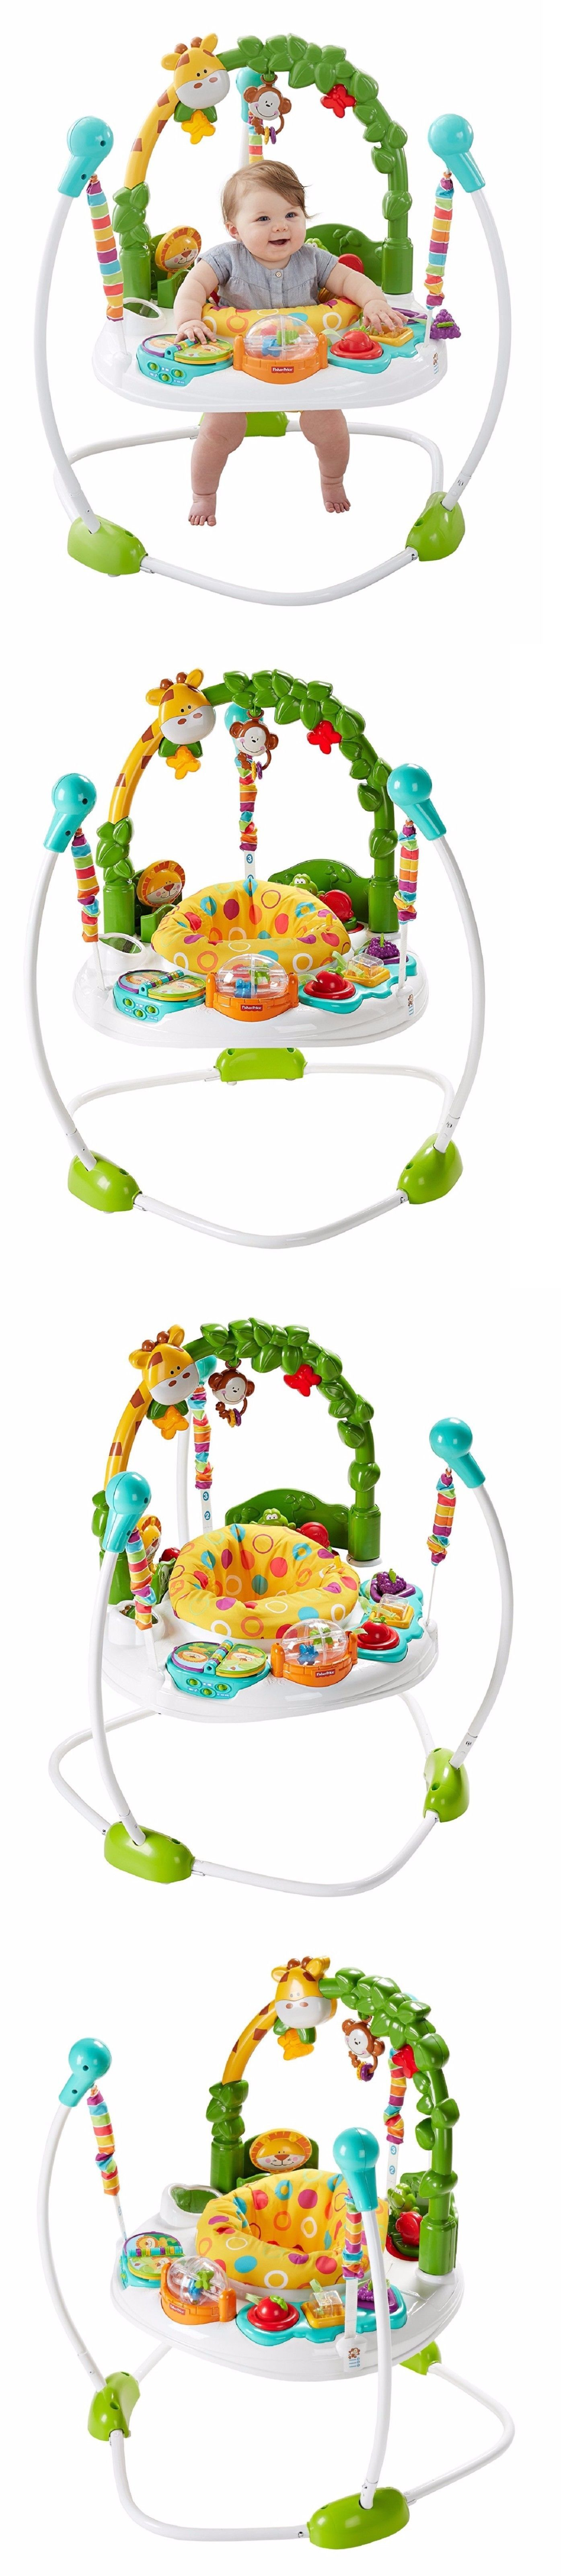 bd3ba489a FISHER PRICE JUMPER GO WILD JUMPEROO Baby Toddler Music Lights ...